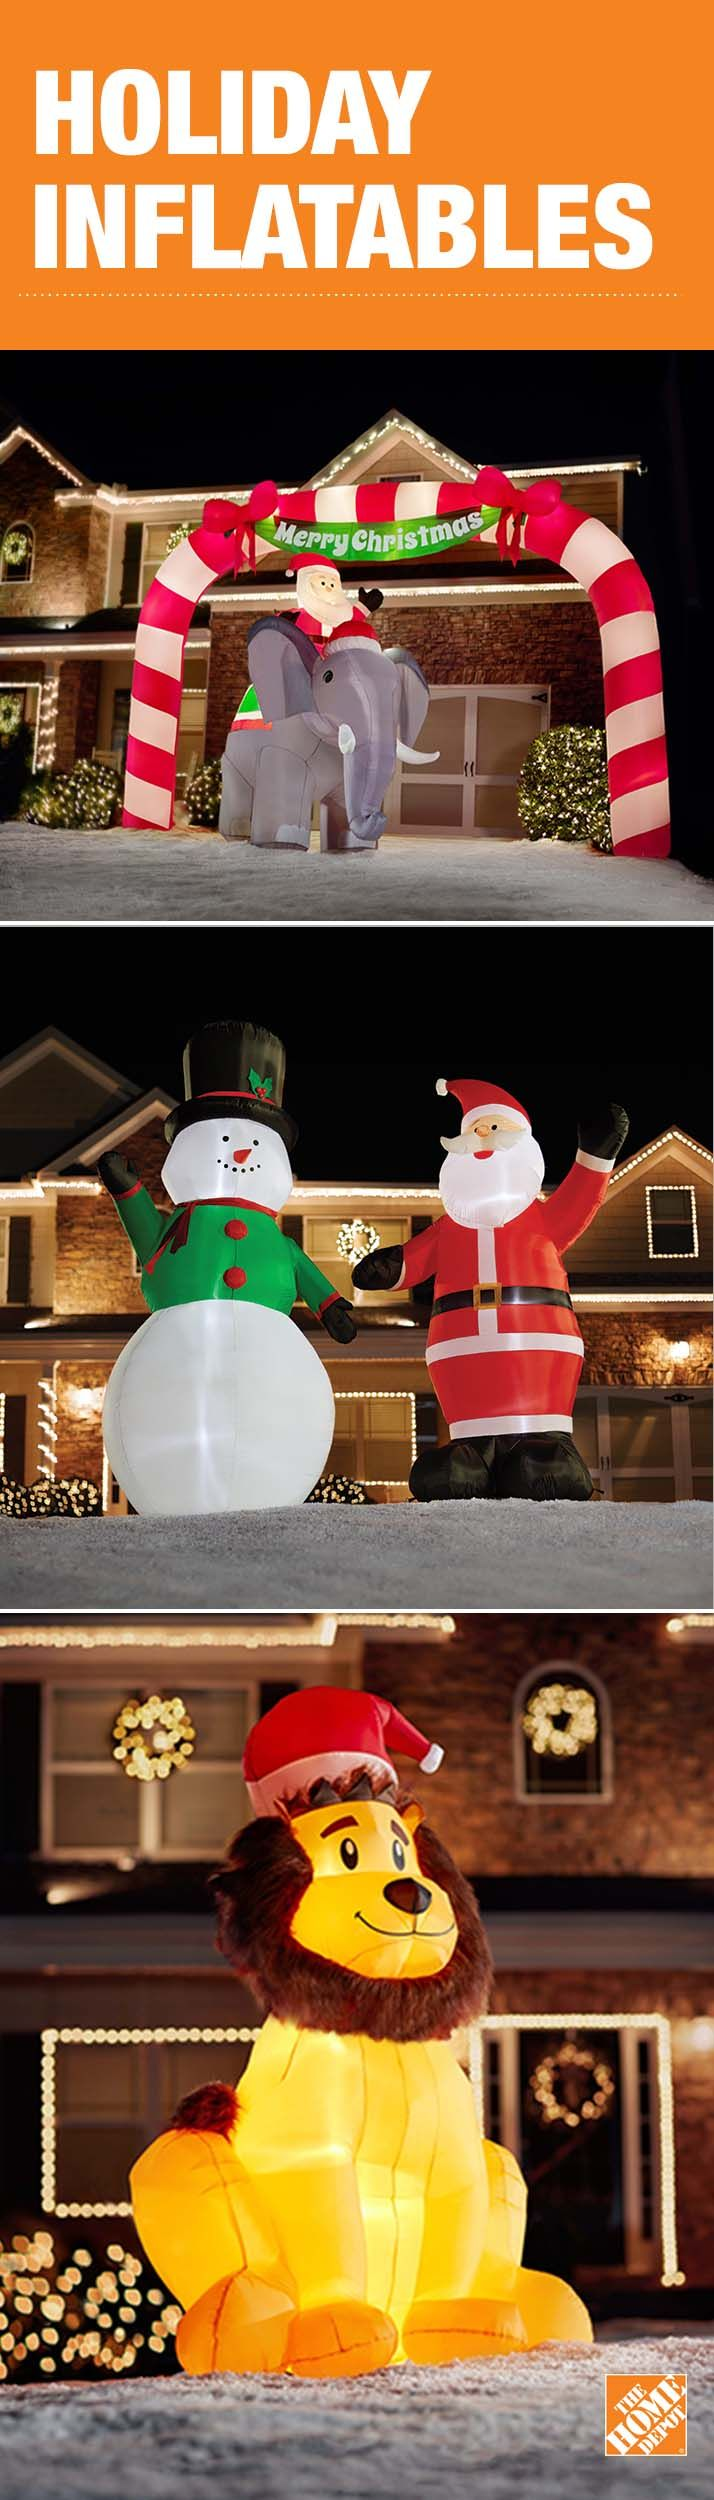 340 best inflatables images on pinterest christmas for Home depot inflatable christmas decorations